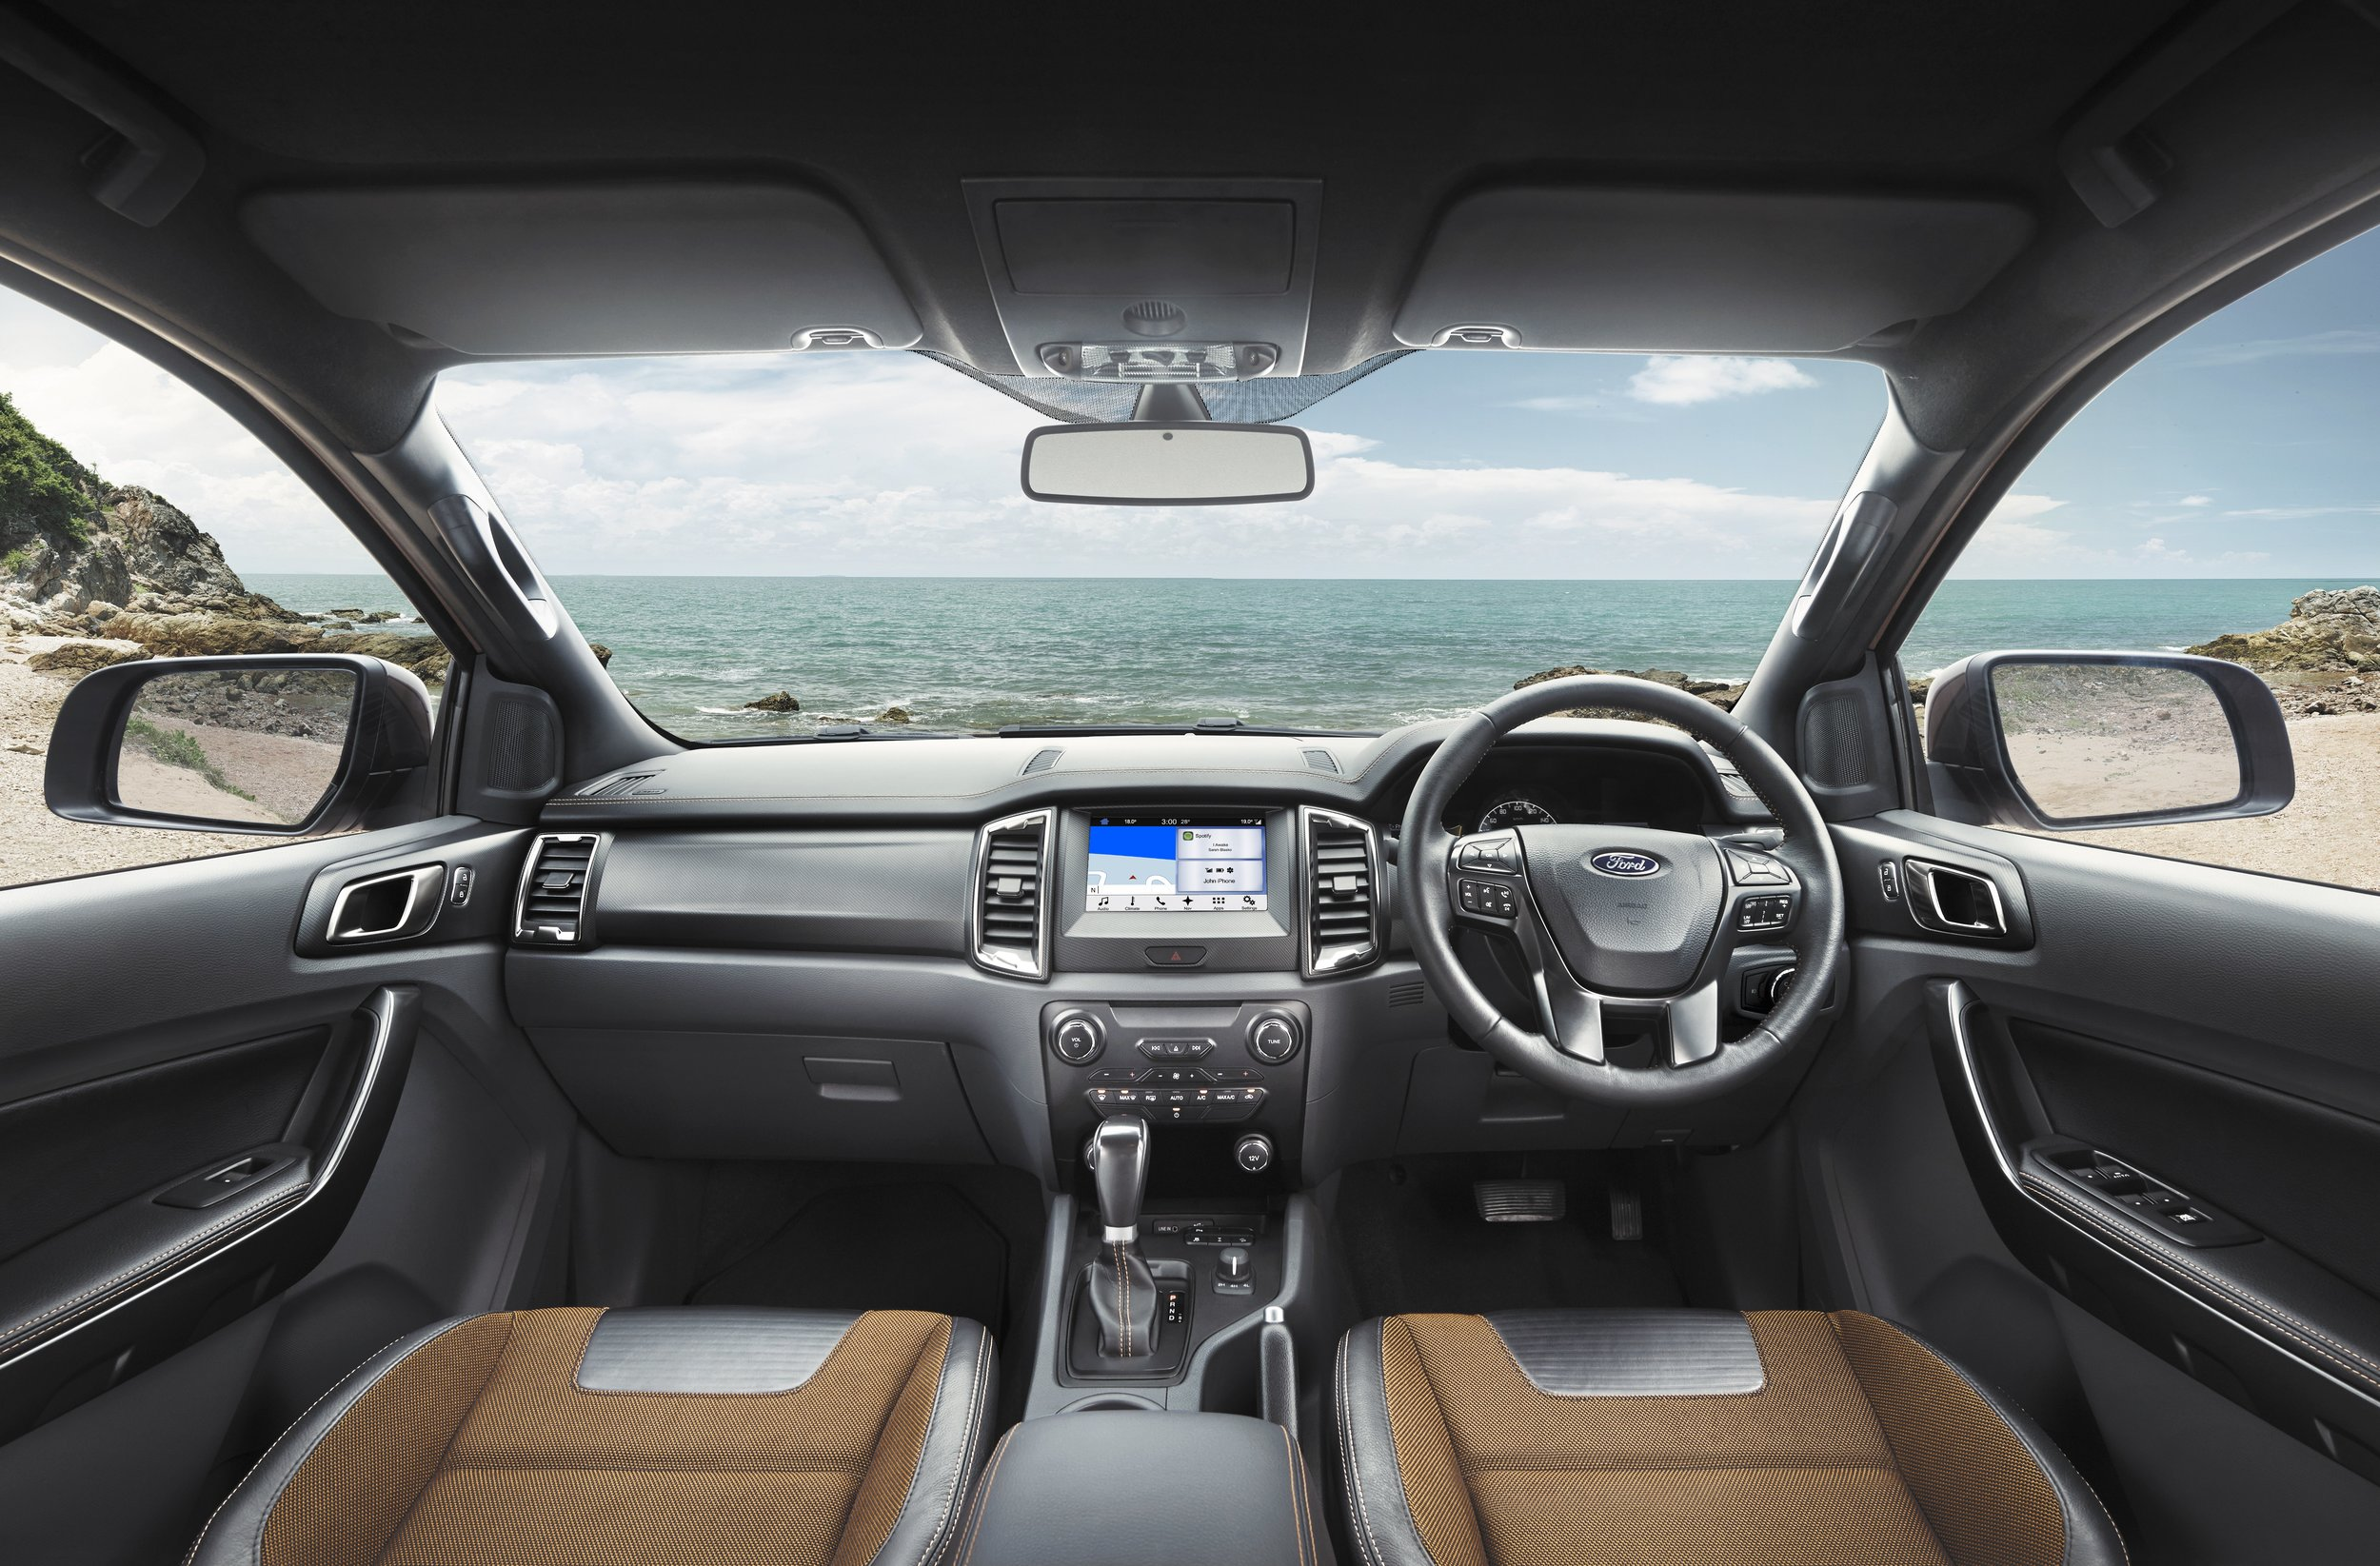 福特游侠Wildtrak interior image157141_c.jpg